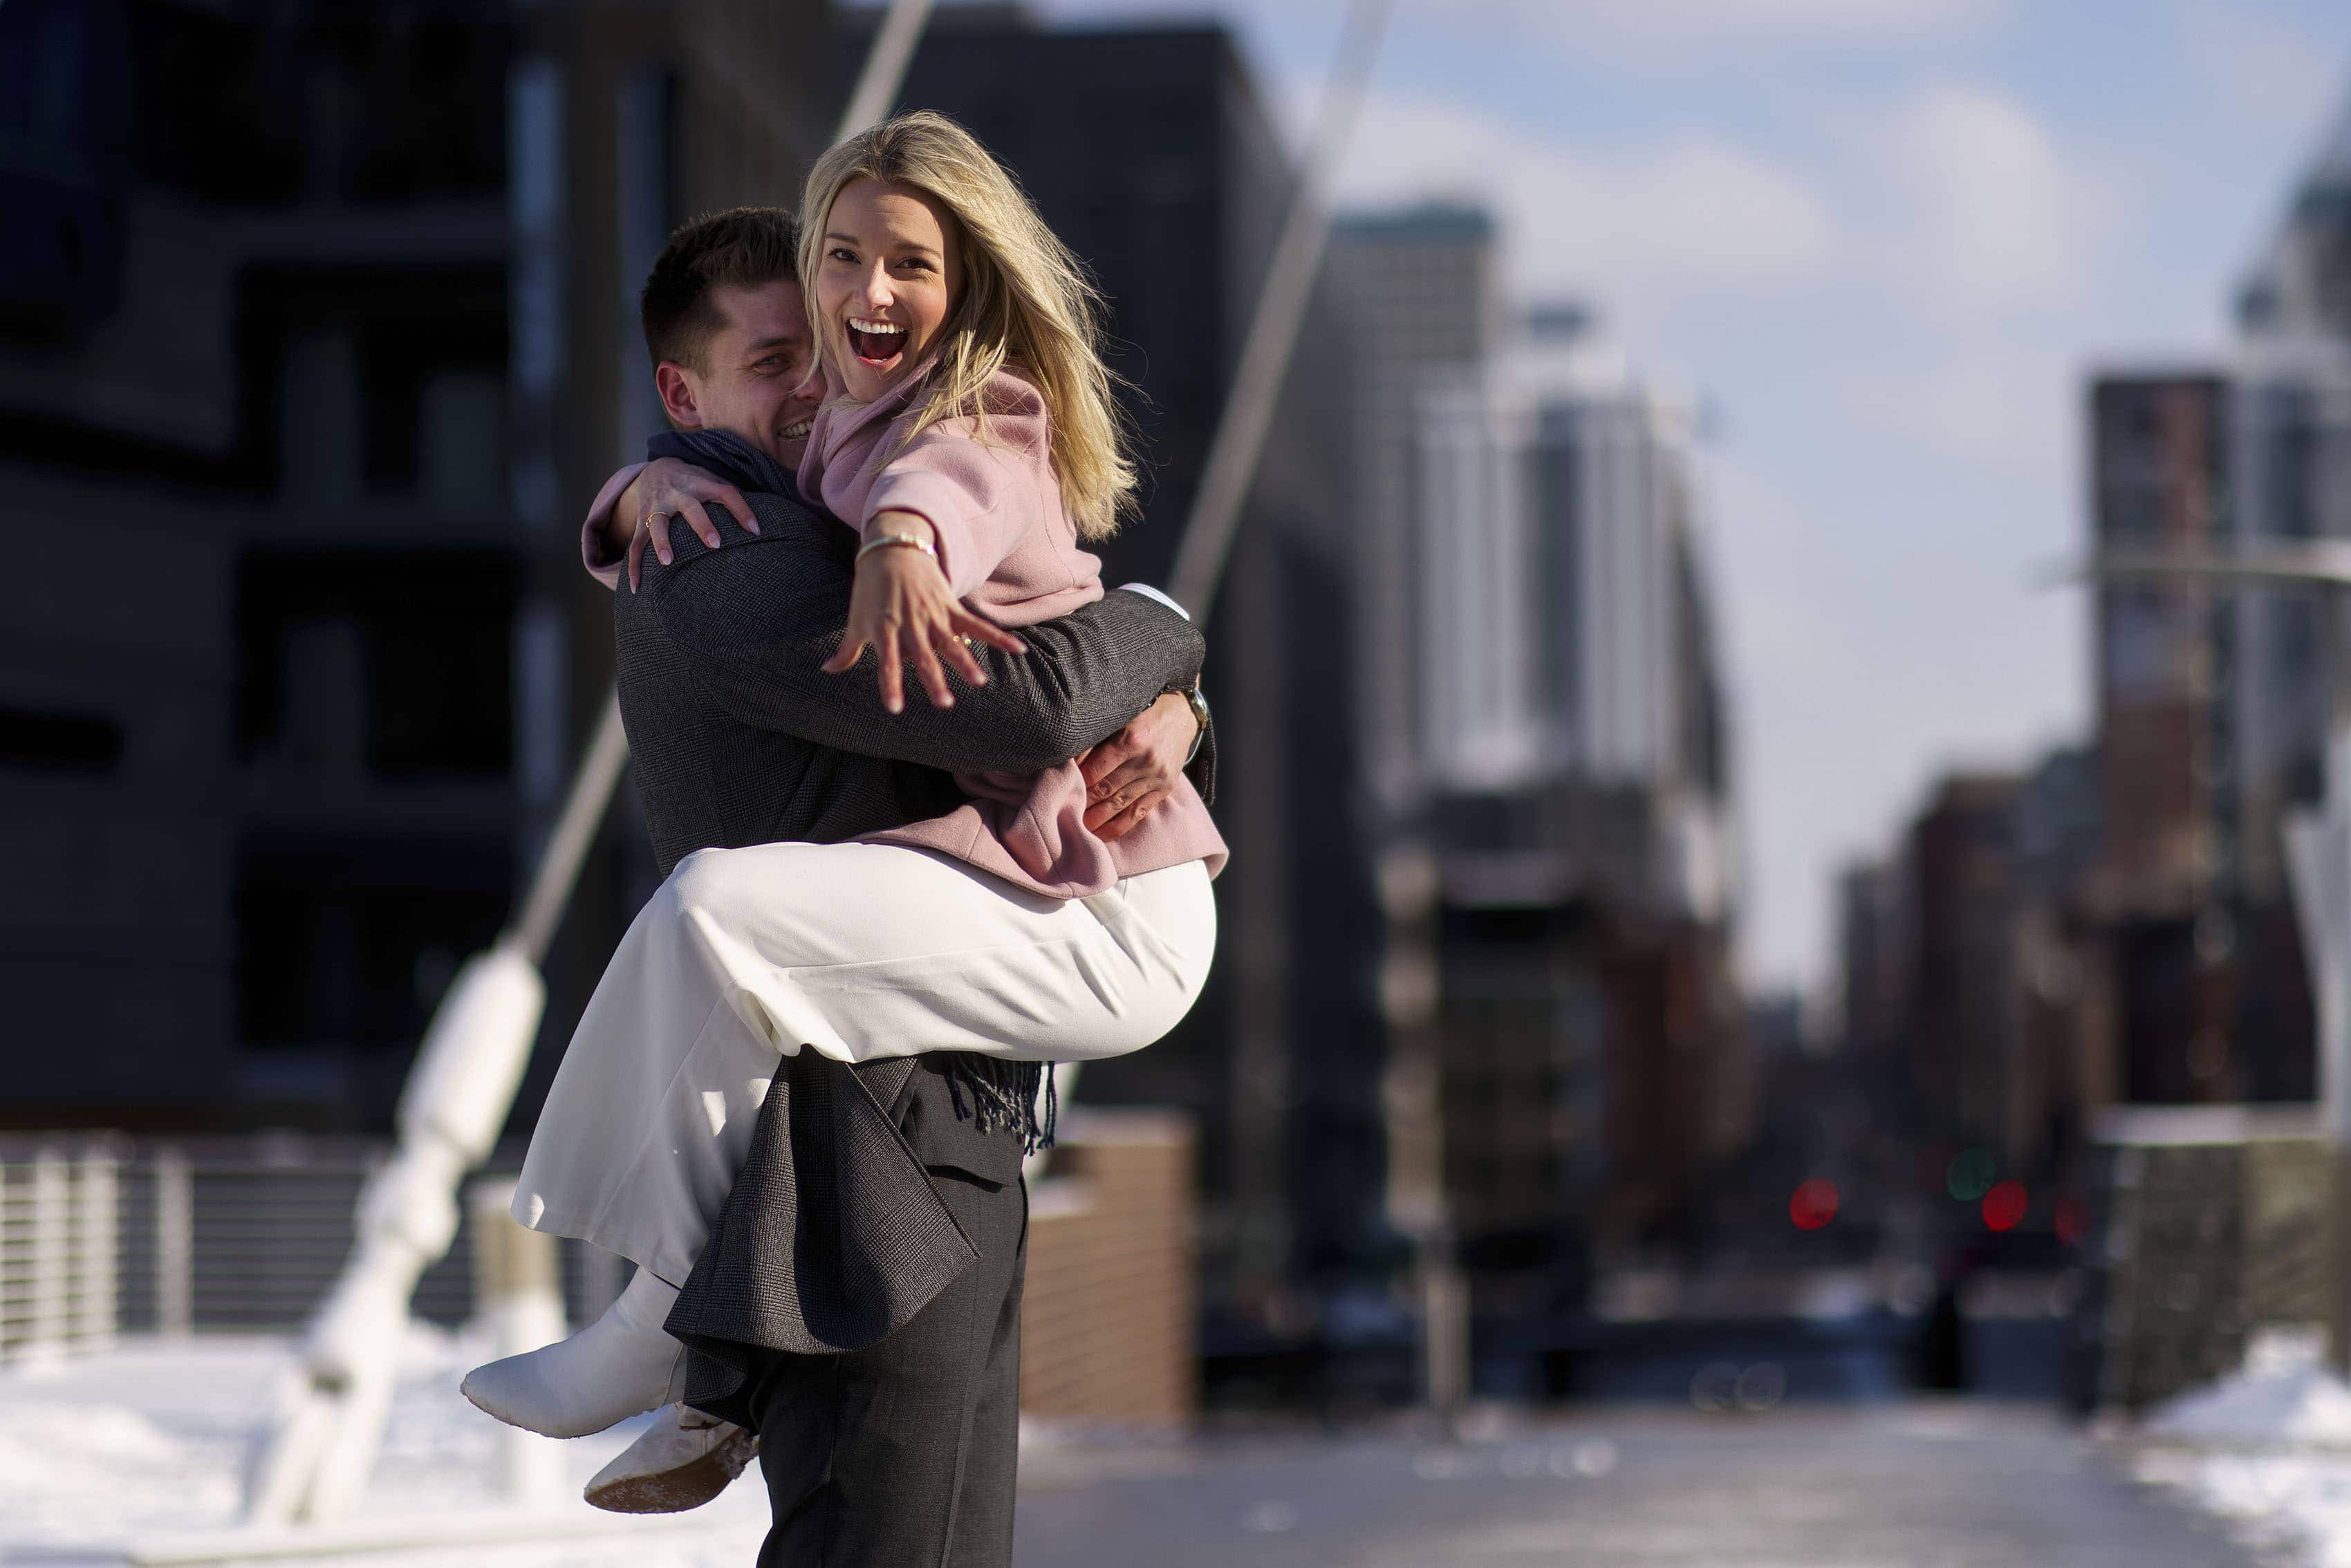 Valentine's Day Proposal in Denver | Willy & Kelly